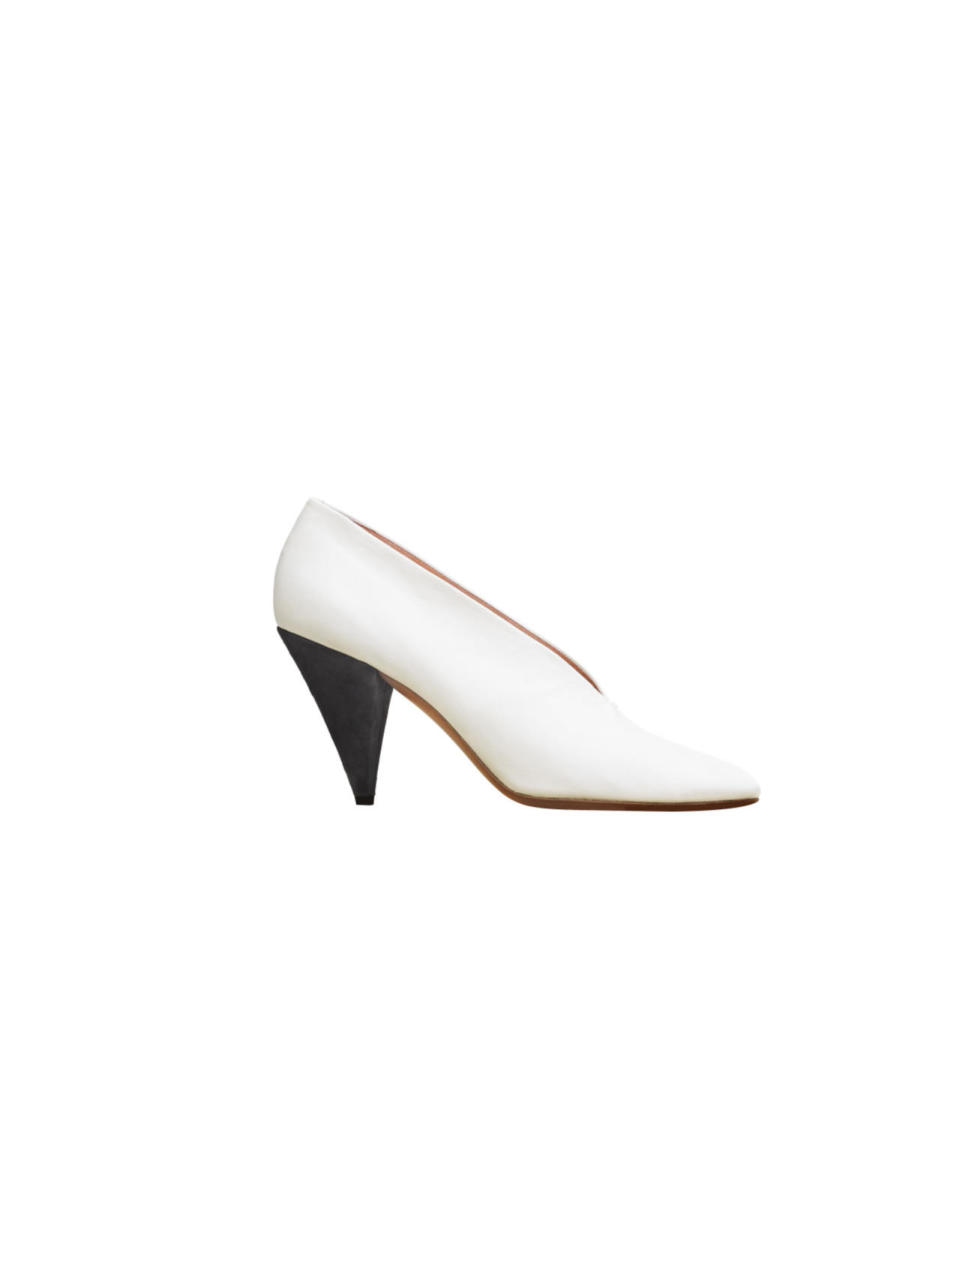 "<p>Milky white pumps in lambskin, $1,200, available at <a href=""https://www.celine.com/en"" rel=""nofollow noopener"" target=""_blank"" data-ylk=""slk:Celine"" class=""link rapid-noclick-resp"">Celine</a></p>"